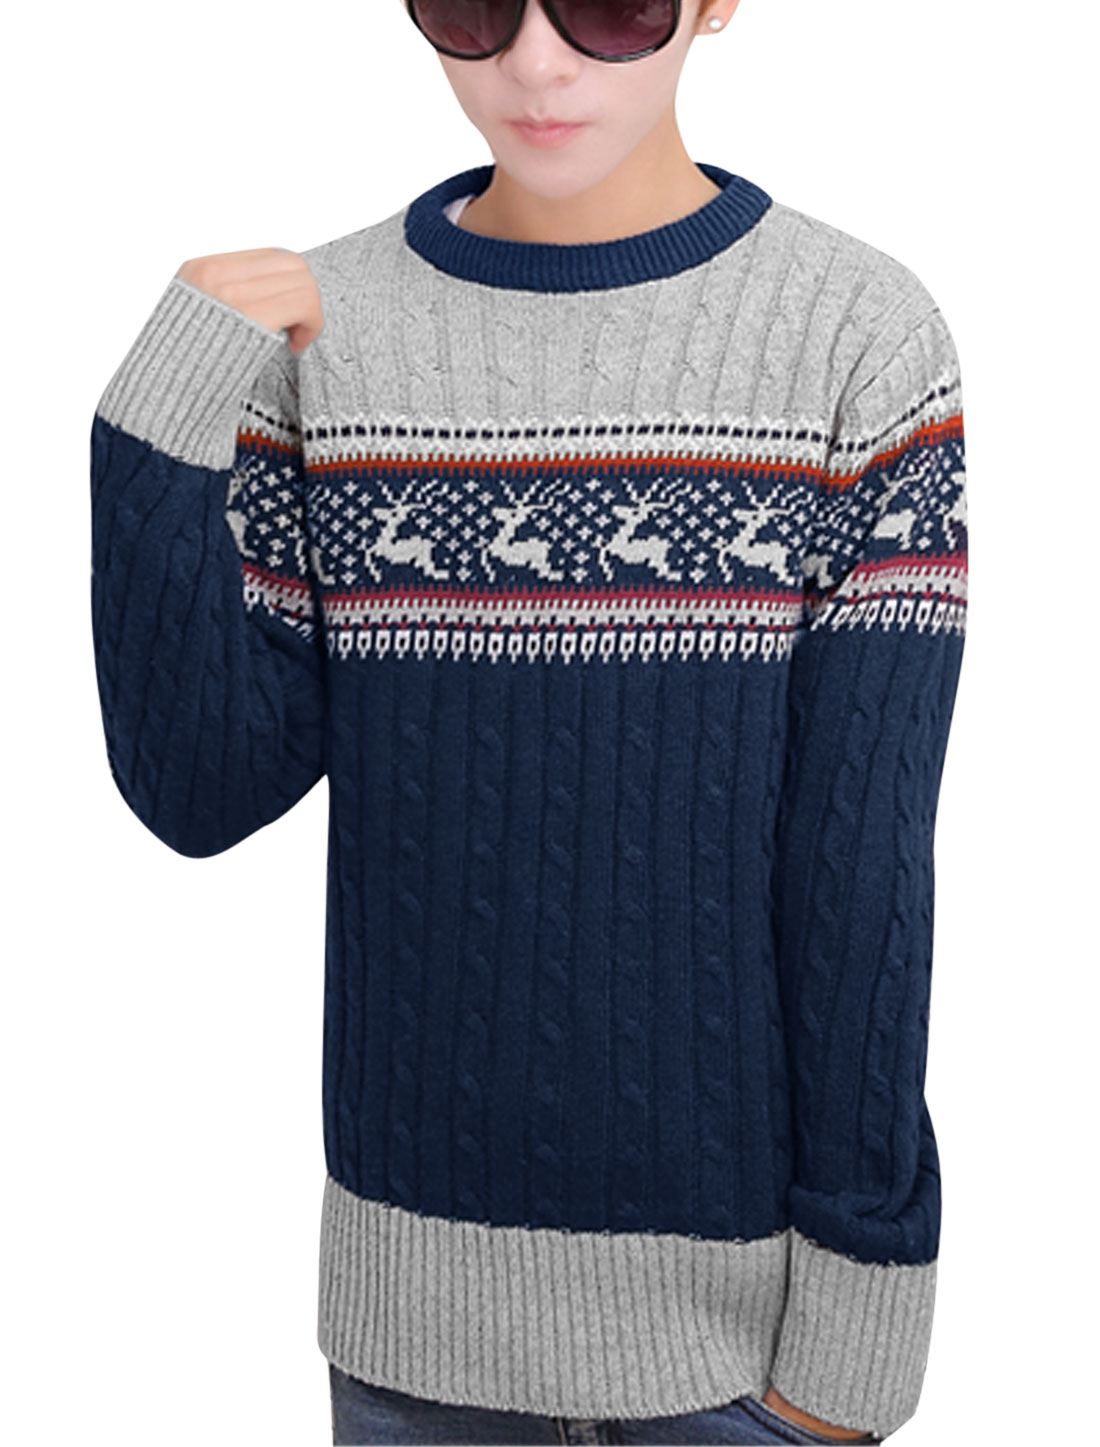 Ribbed Cuffs Deer Novelty Print Leisure Sweater for Men Navy Blue S